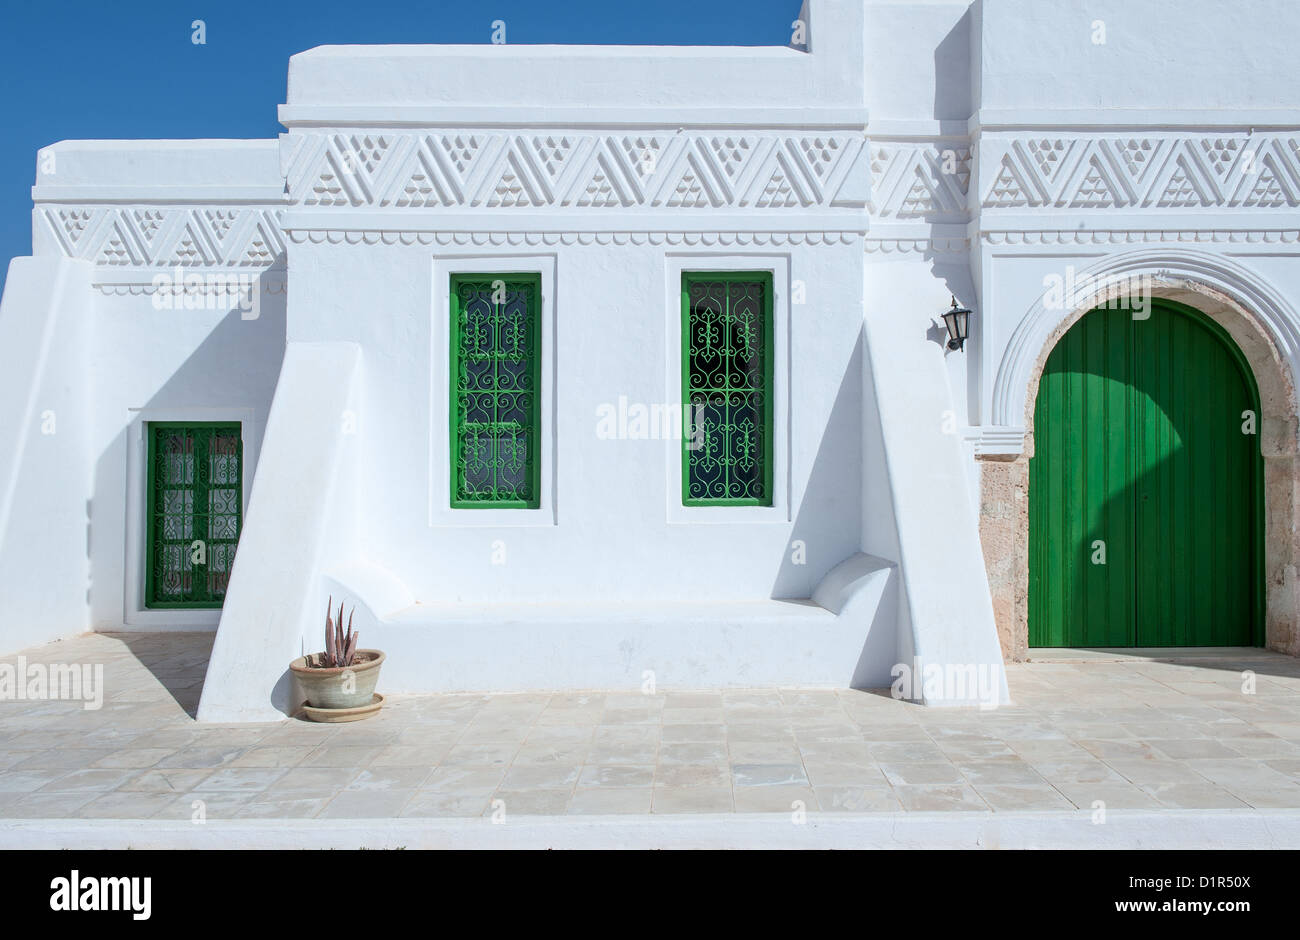 South of Tunisia, Djerba,the Guellala museum - Stock Image